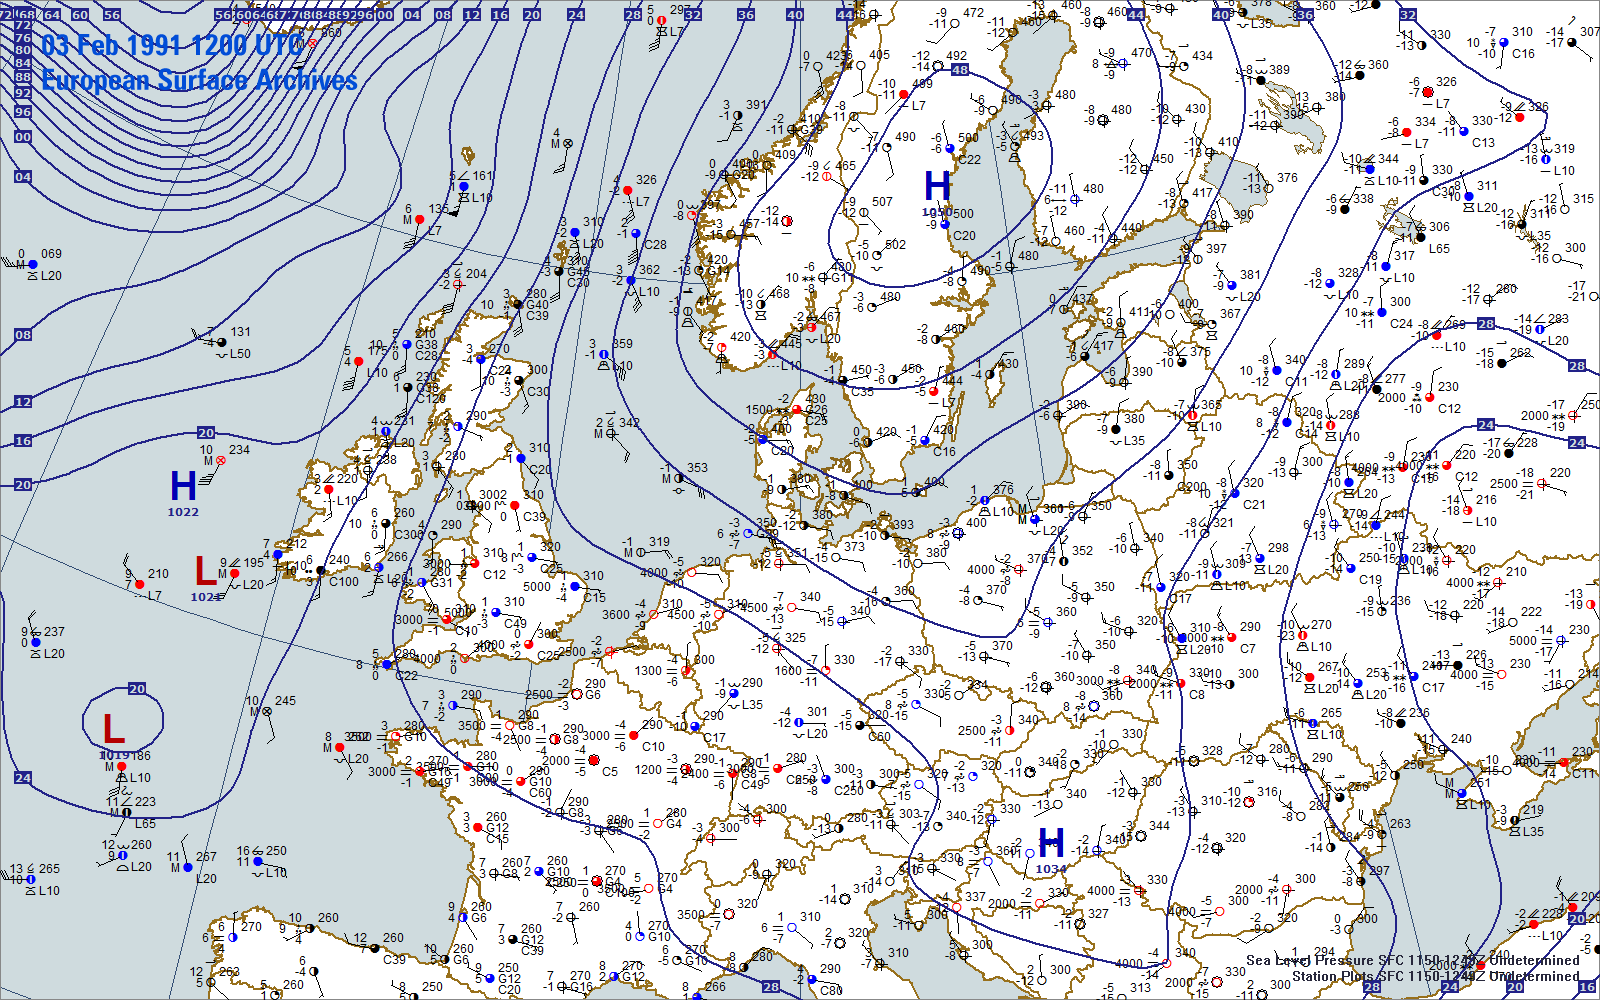 Russia Winter Storm European Surface Archi...